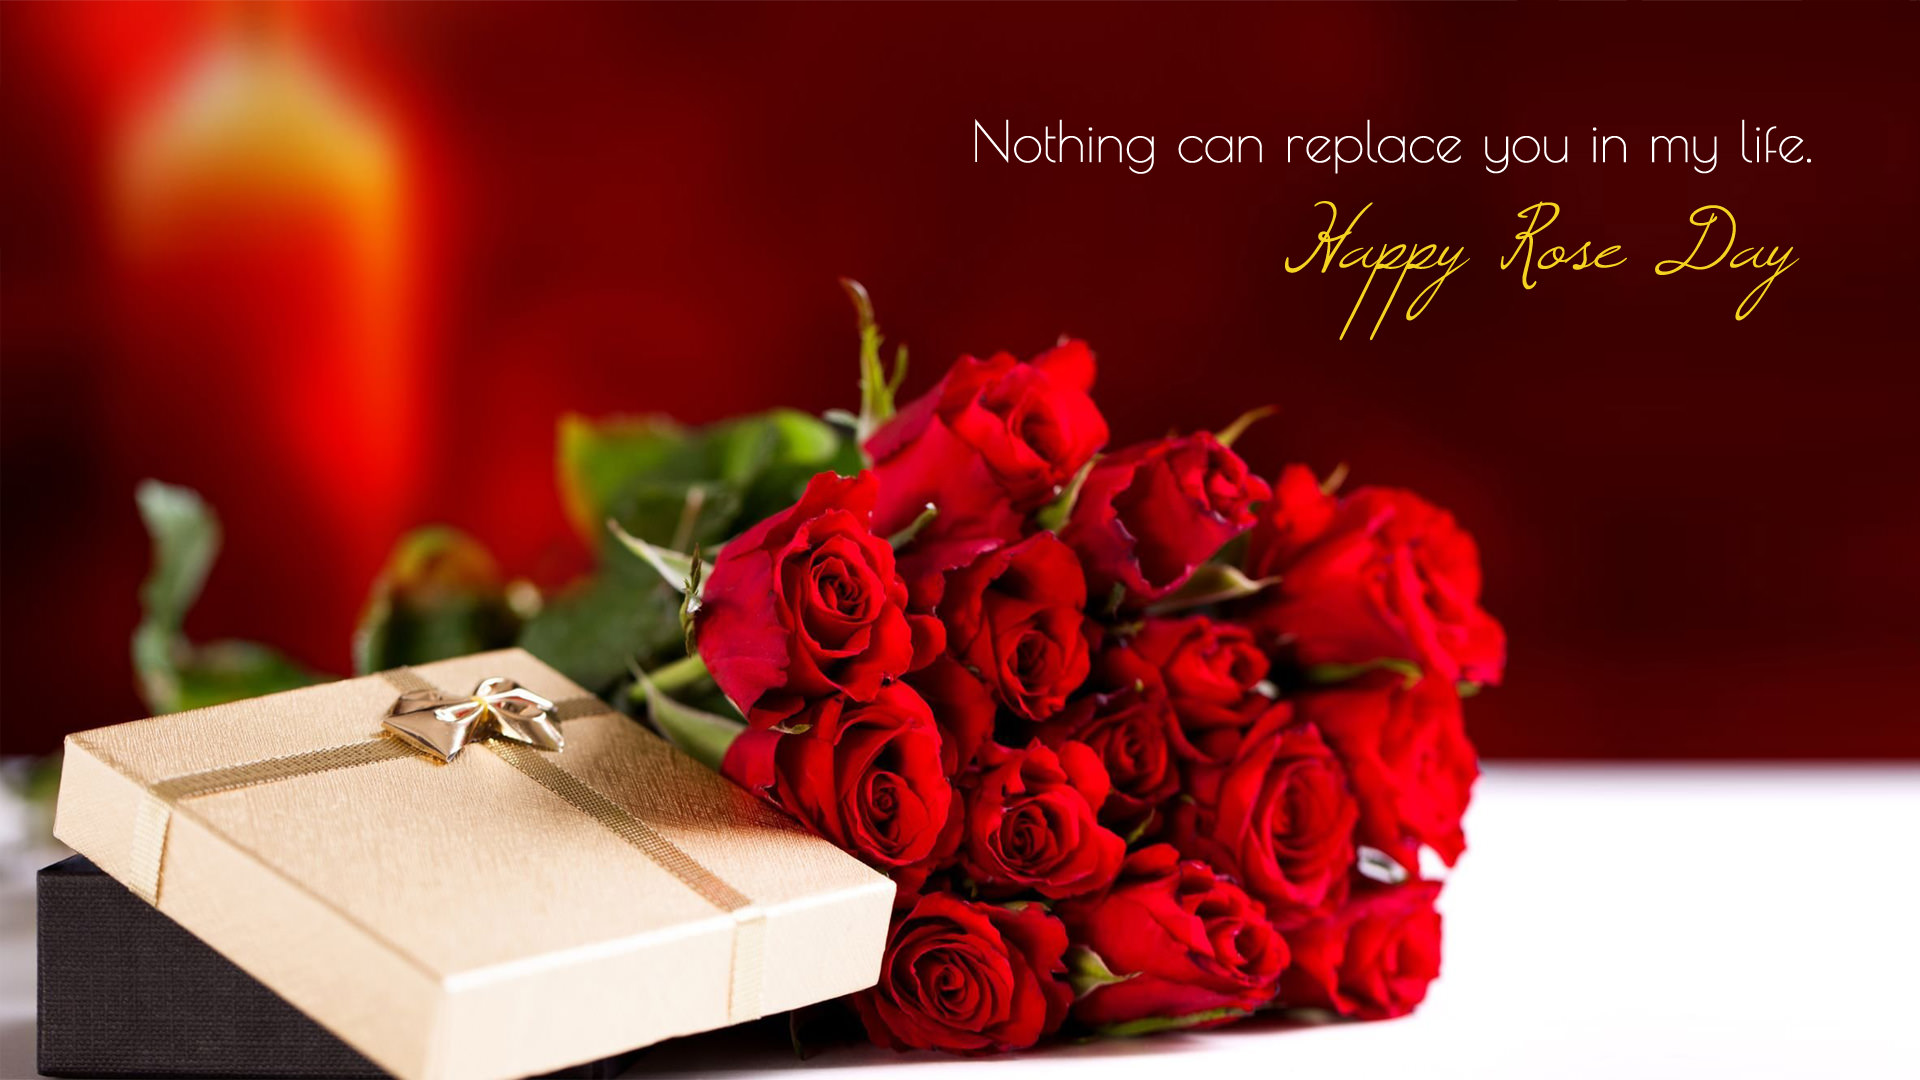 Bf Gf Quotes Wallpaper 7th Feb Rose Day Wallpaper Hd All Color Of Roses For